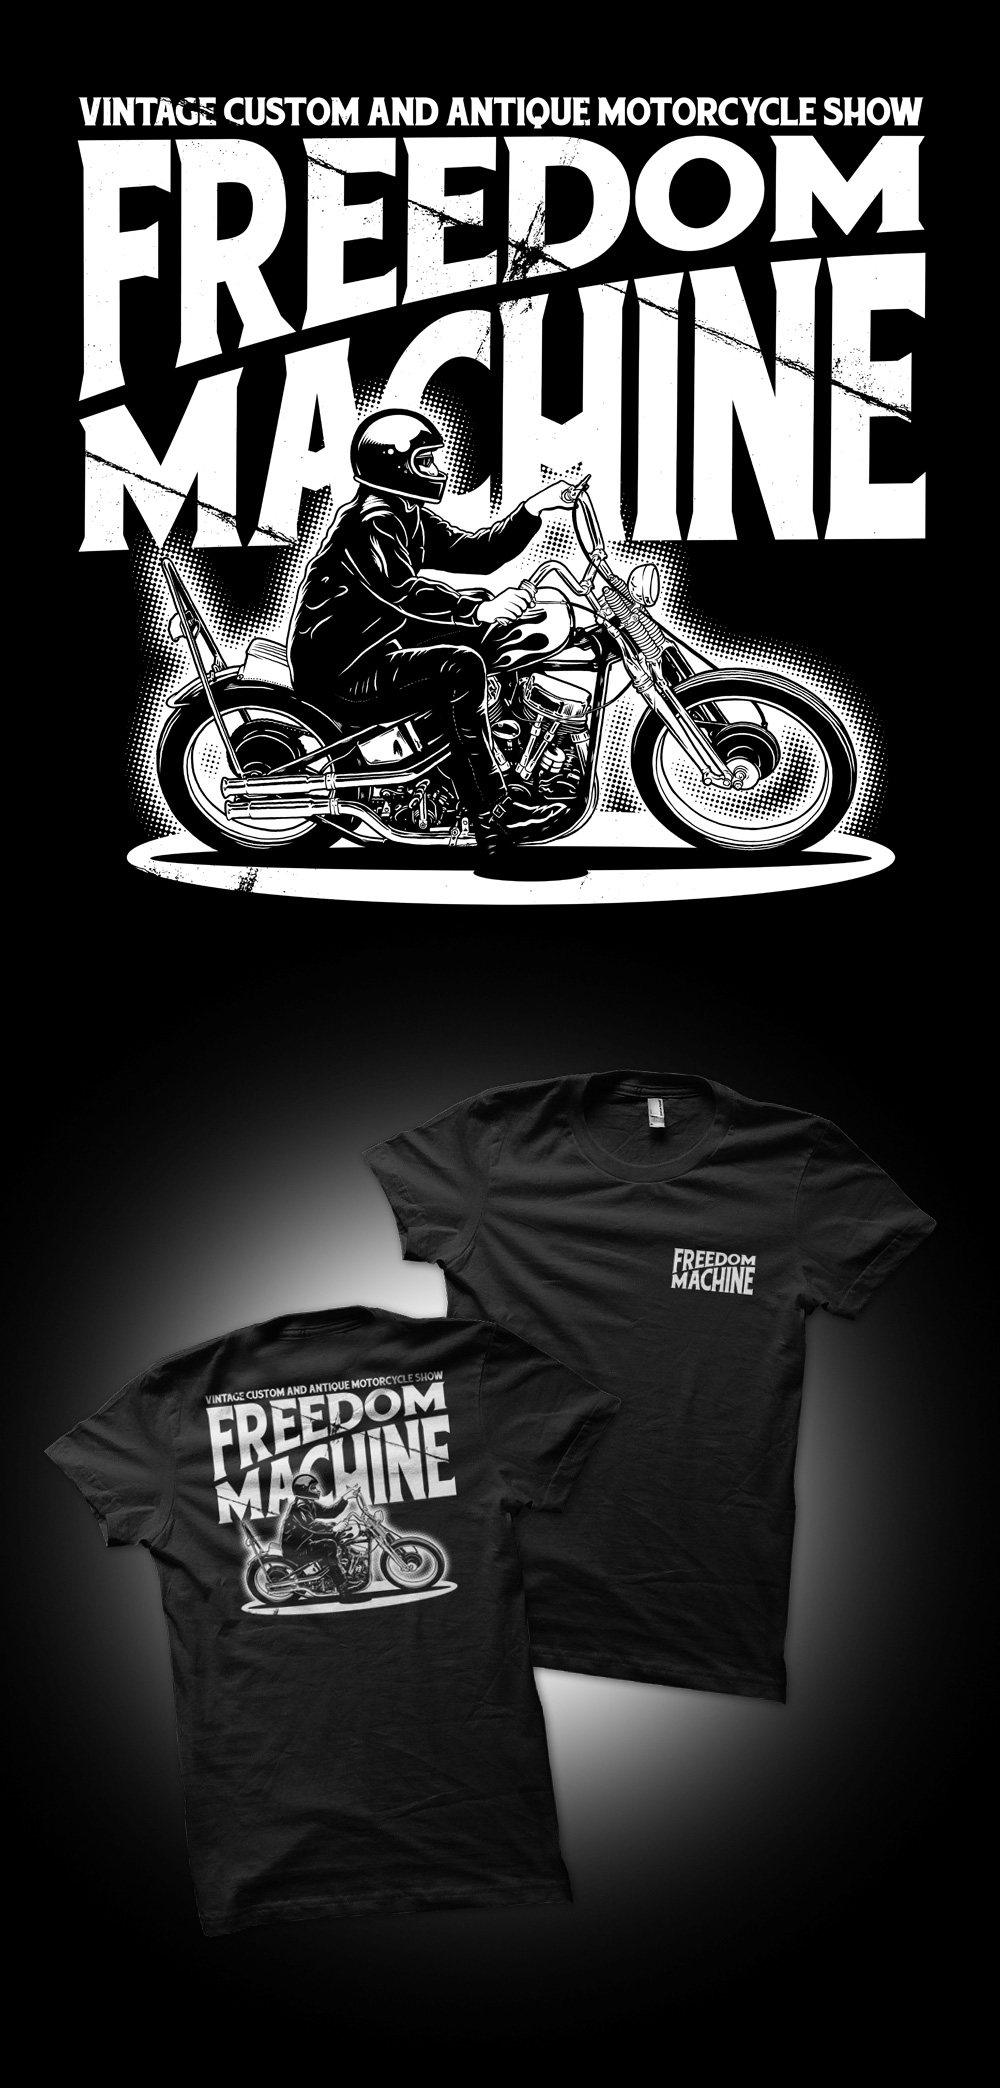 Freedom Machine Show, Ontario, Tshirt Design, Illustration, Clothing, Tee, Shirt, Graphic Design, Chopper, Motorcycle Show, Motorcycle, Ghost Town